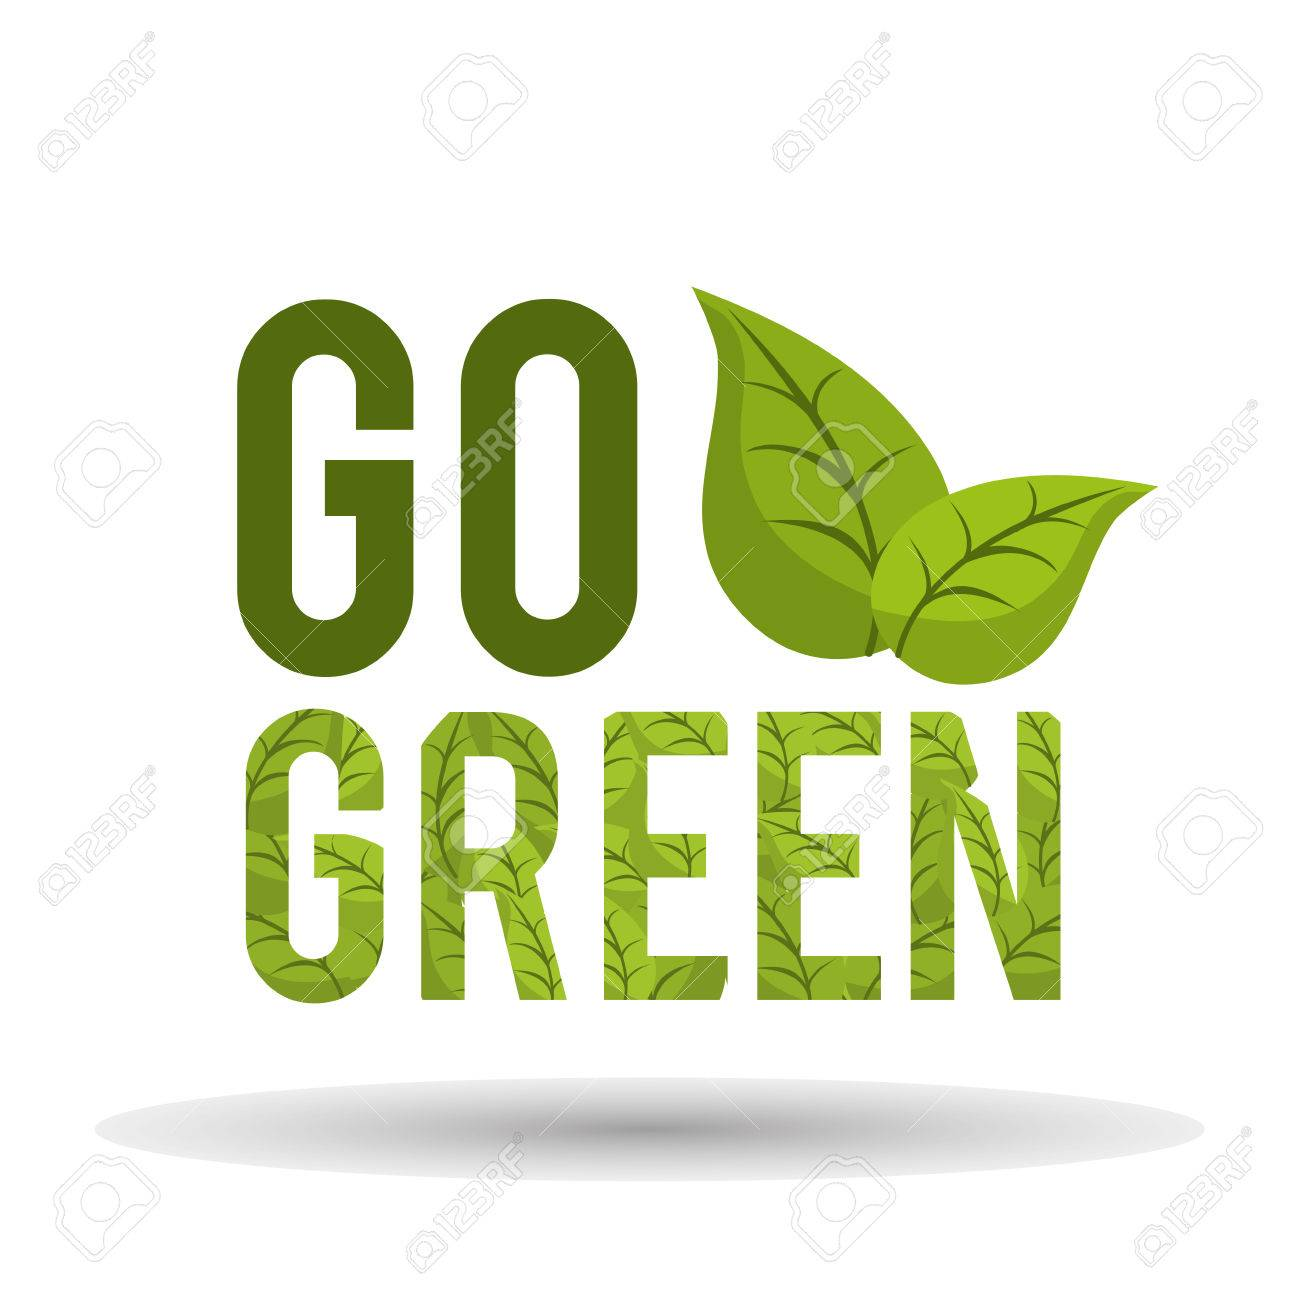 Go green concept with eco icons design, vector illustration 10 eps graphic. - 46851612